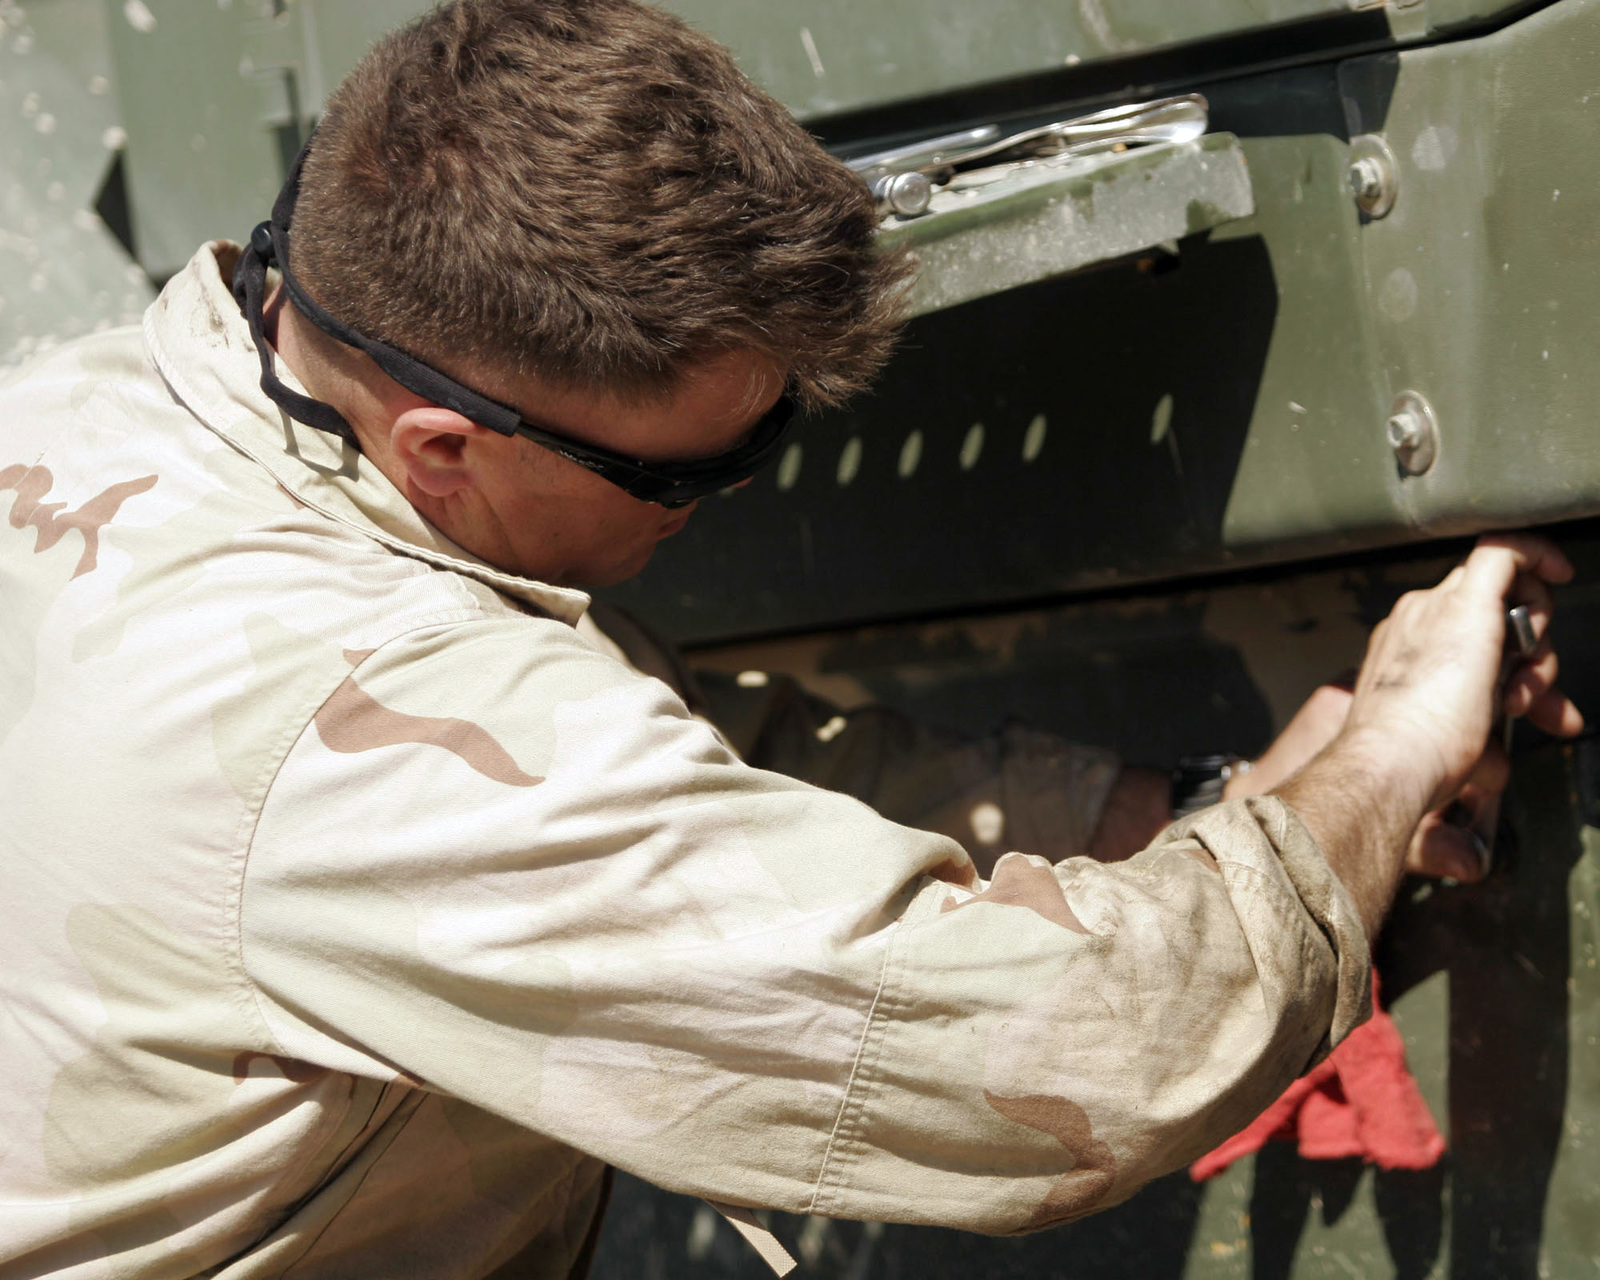 SGT. Jamie B. Pugh, Conbat Logistics Battalion 6 Transport Support Conpany Platoon SGT., screws in a cover onto a 644 E Tram, during an operational check in the Maintenance lot on March 6, 2007. Conbat Logistics Battalion 6 is deployed within the Anbar province in order to develop the Iraqi Security Forces, facilitate the development of rule of law through democratic government reforms and continue the development of a market based econony centered on Iraqi reconstruction. (U.S. Marine Corps photo by CPL. Michael J. O'Brien) (Released)